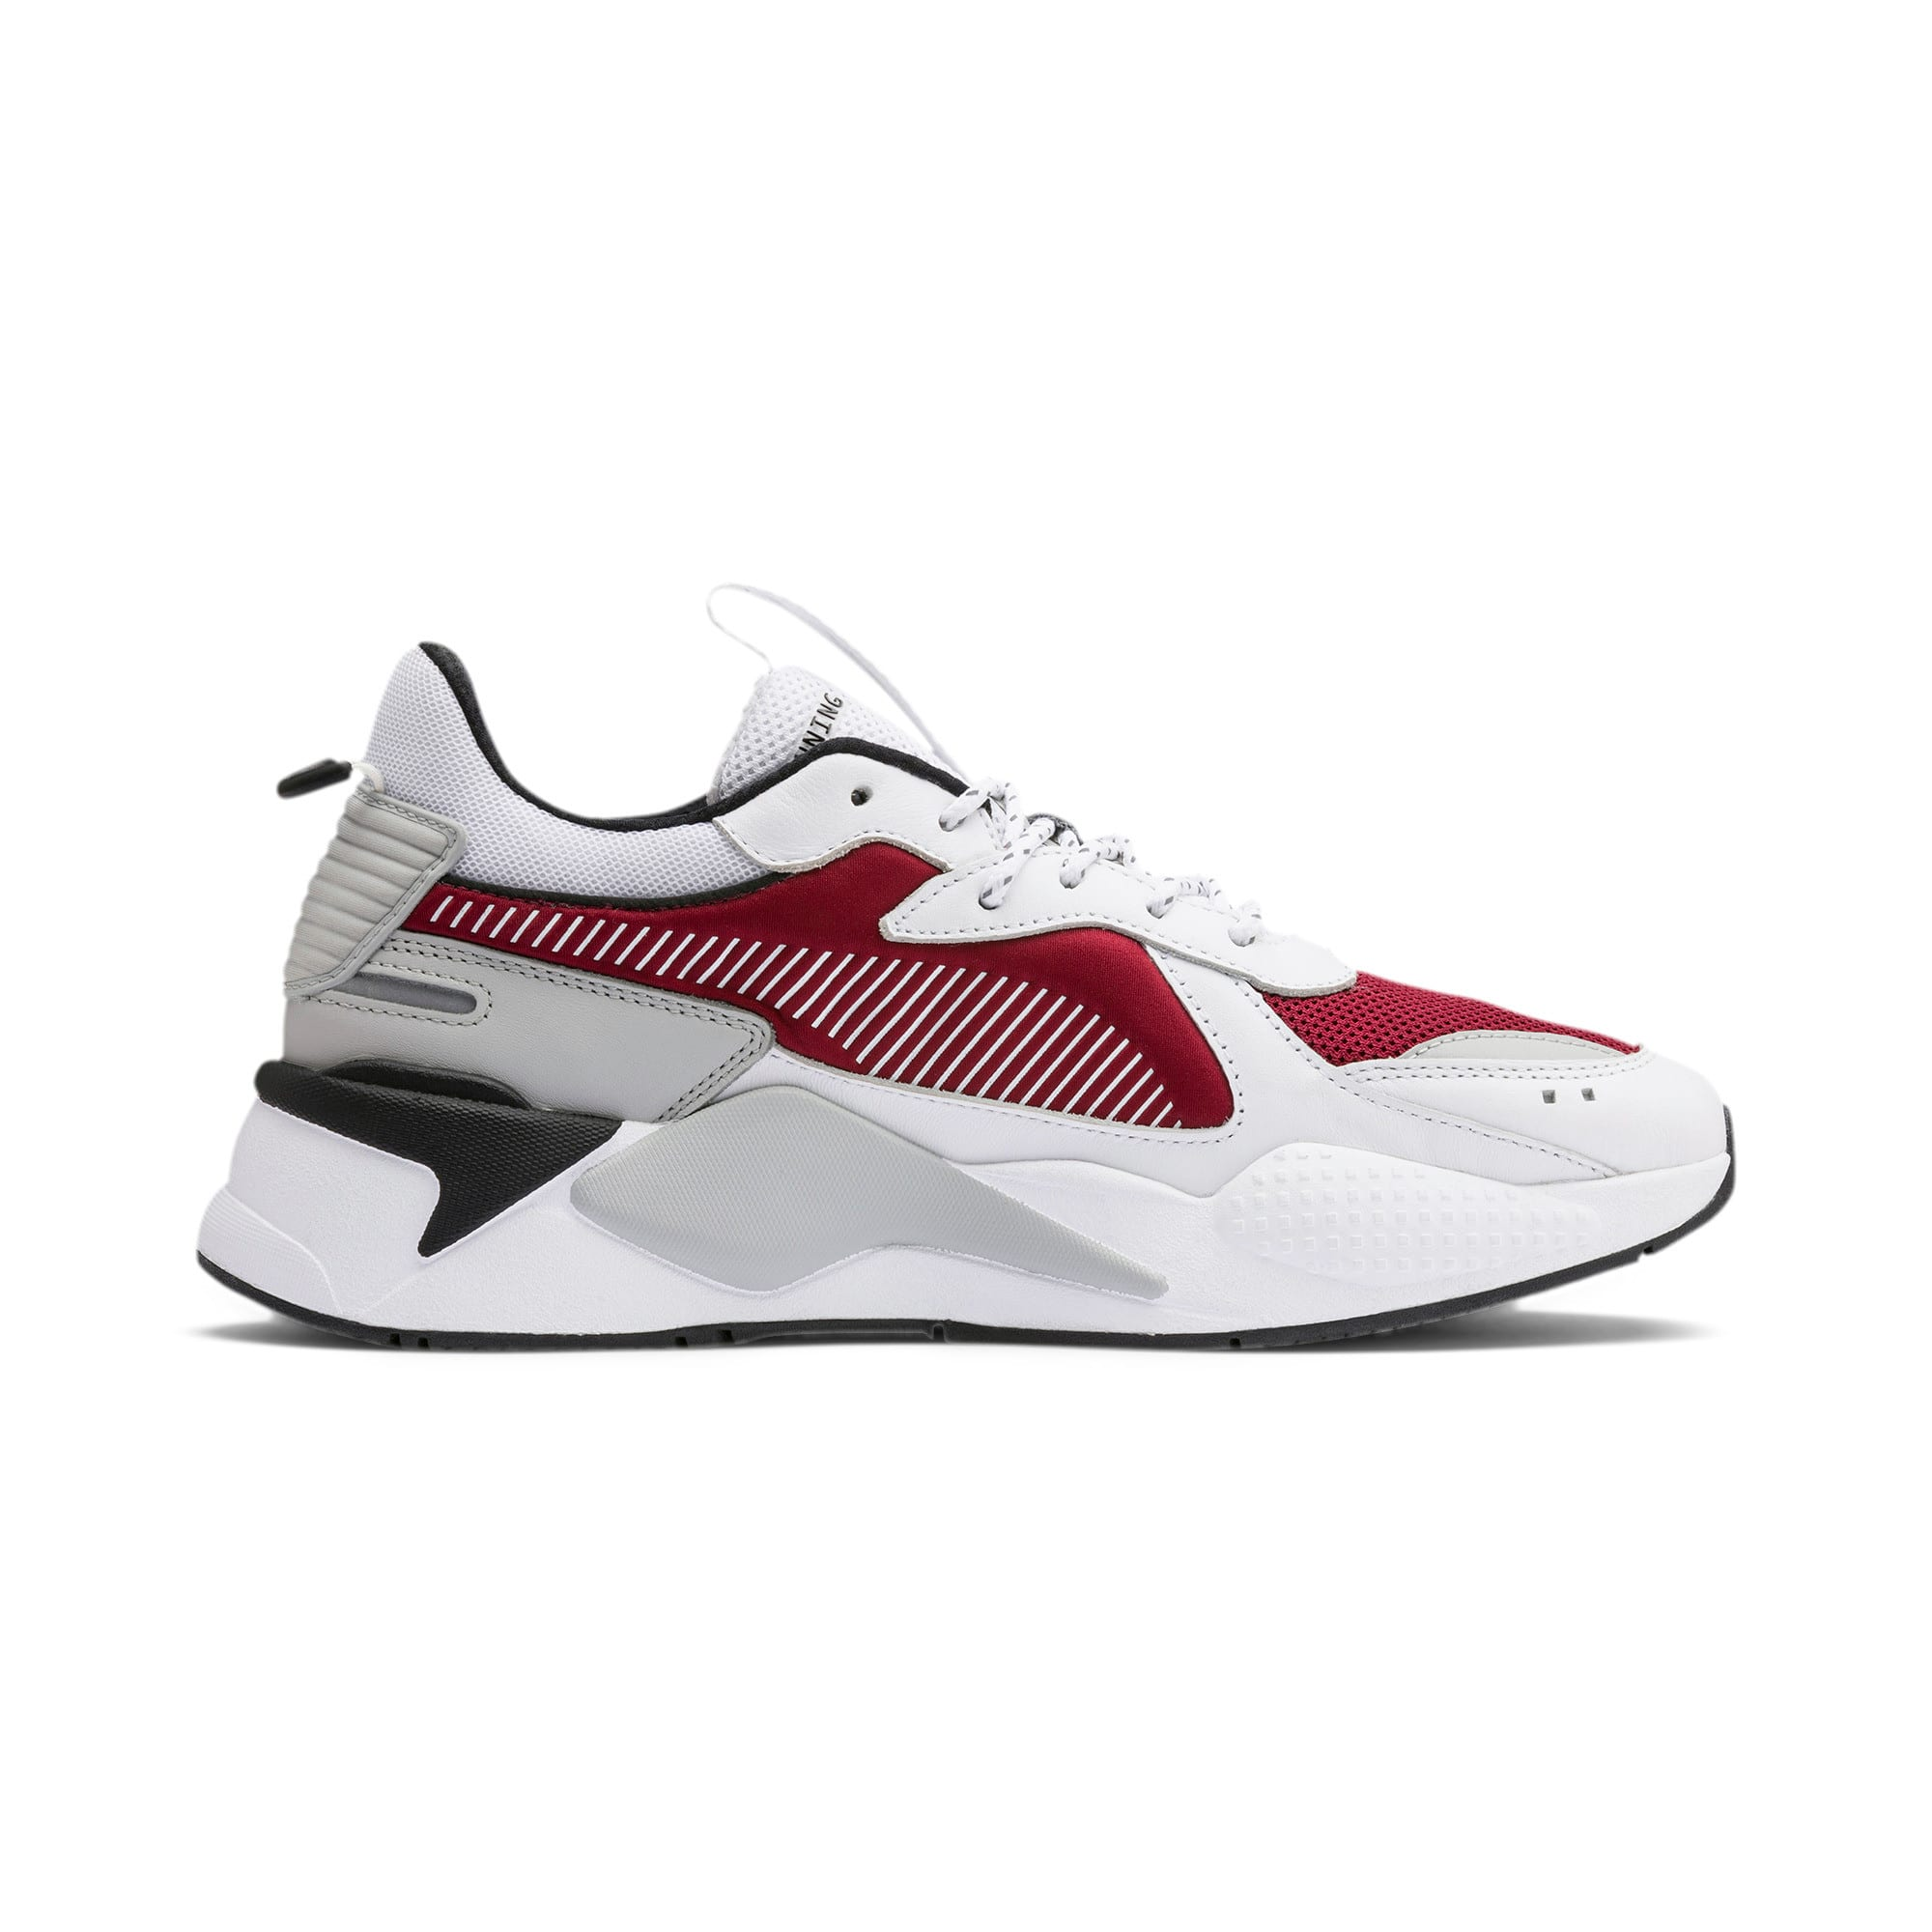 Thumbnail 6 of RS-X Trainers, Puma White-Rhubarb, medium